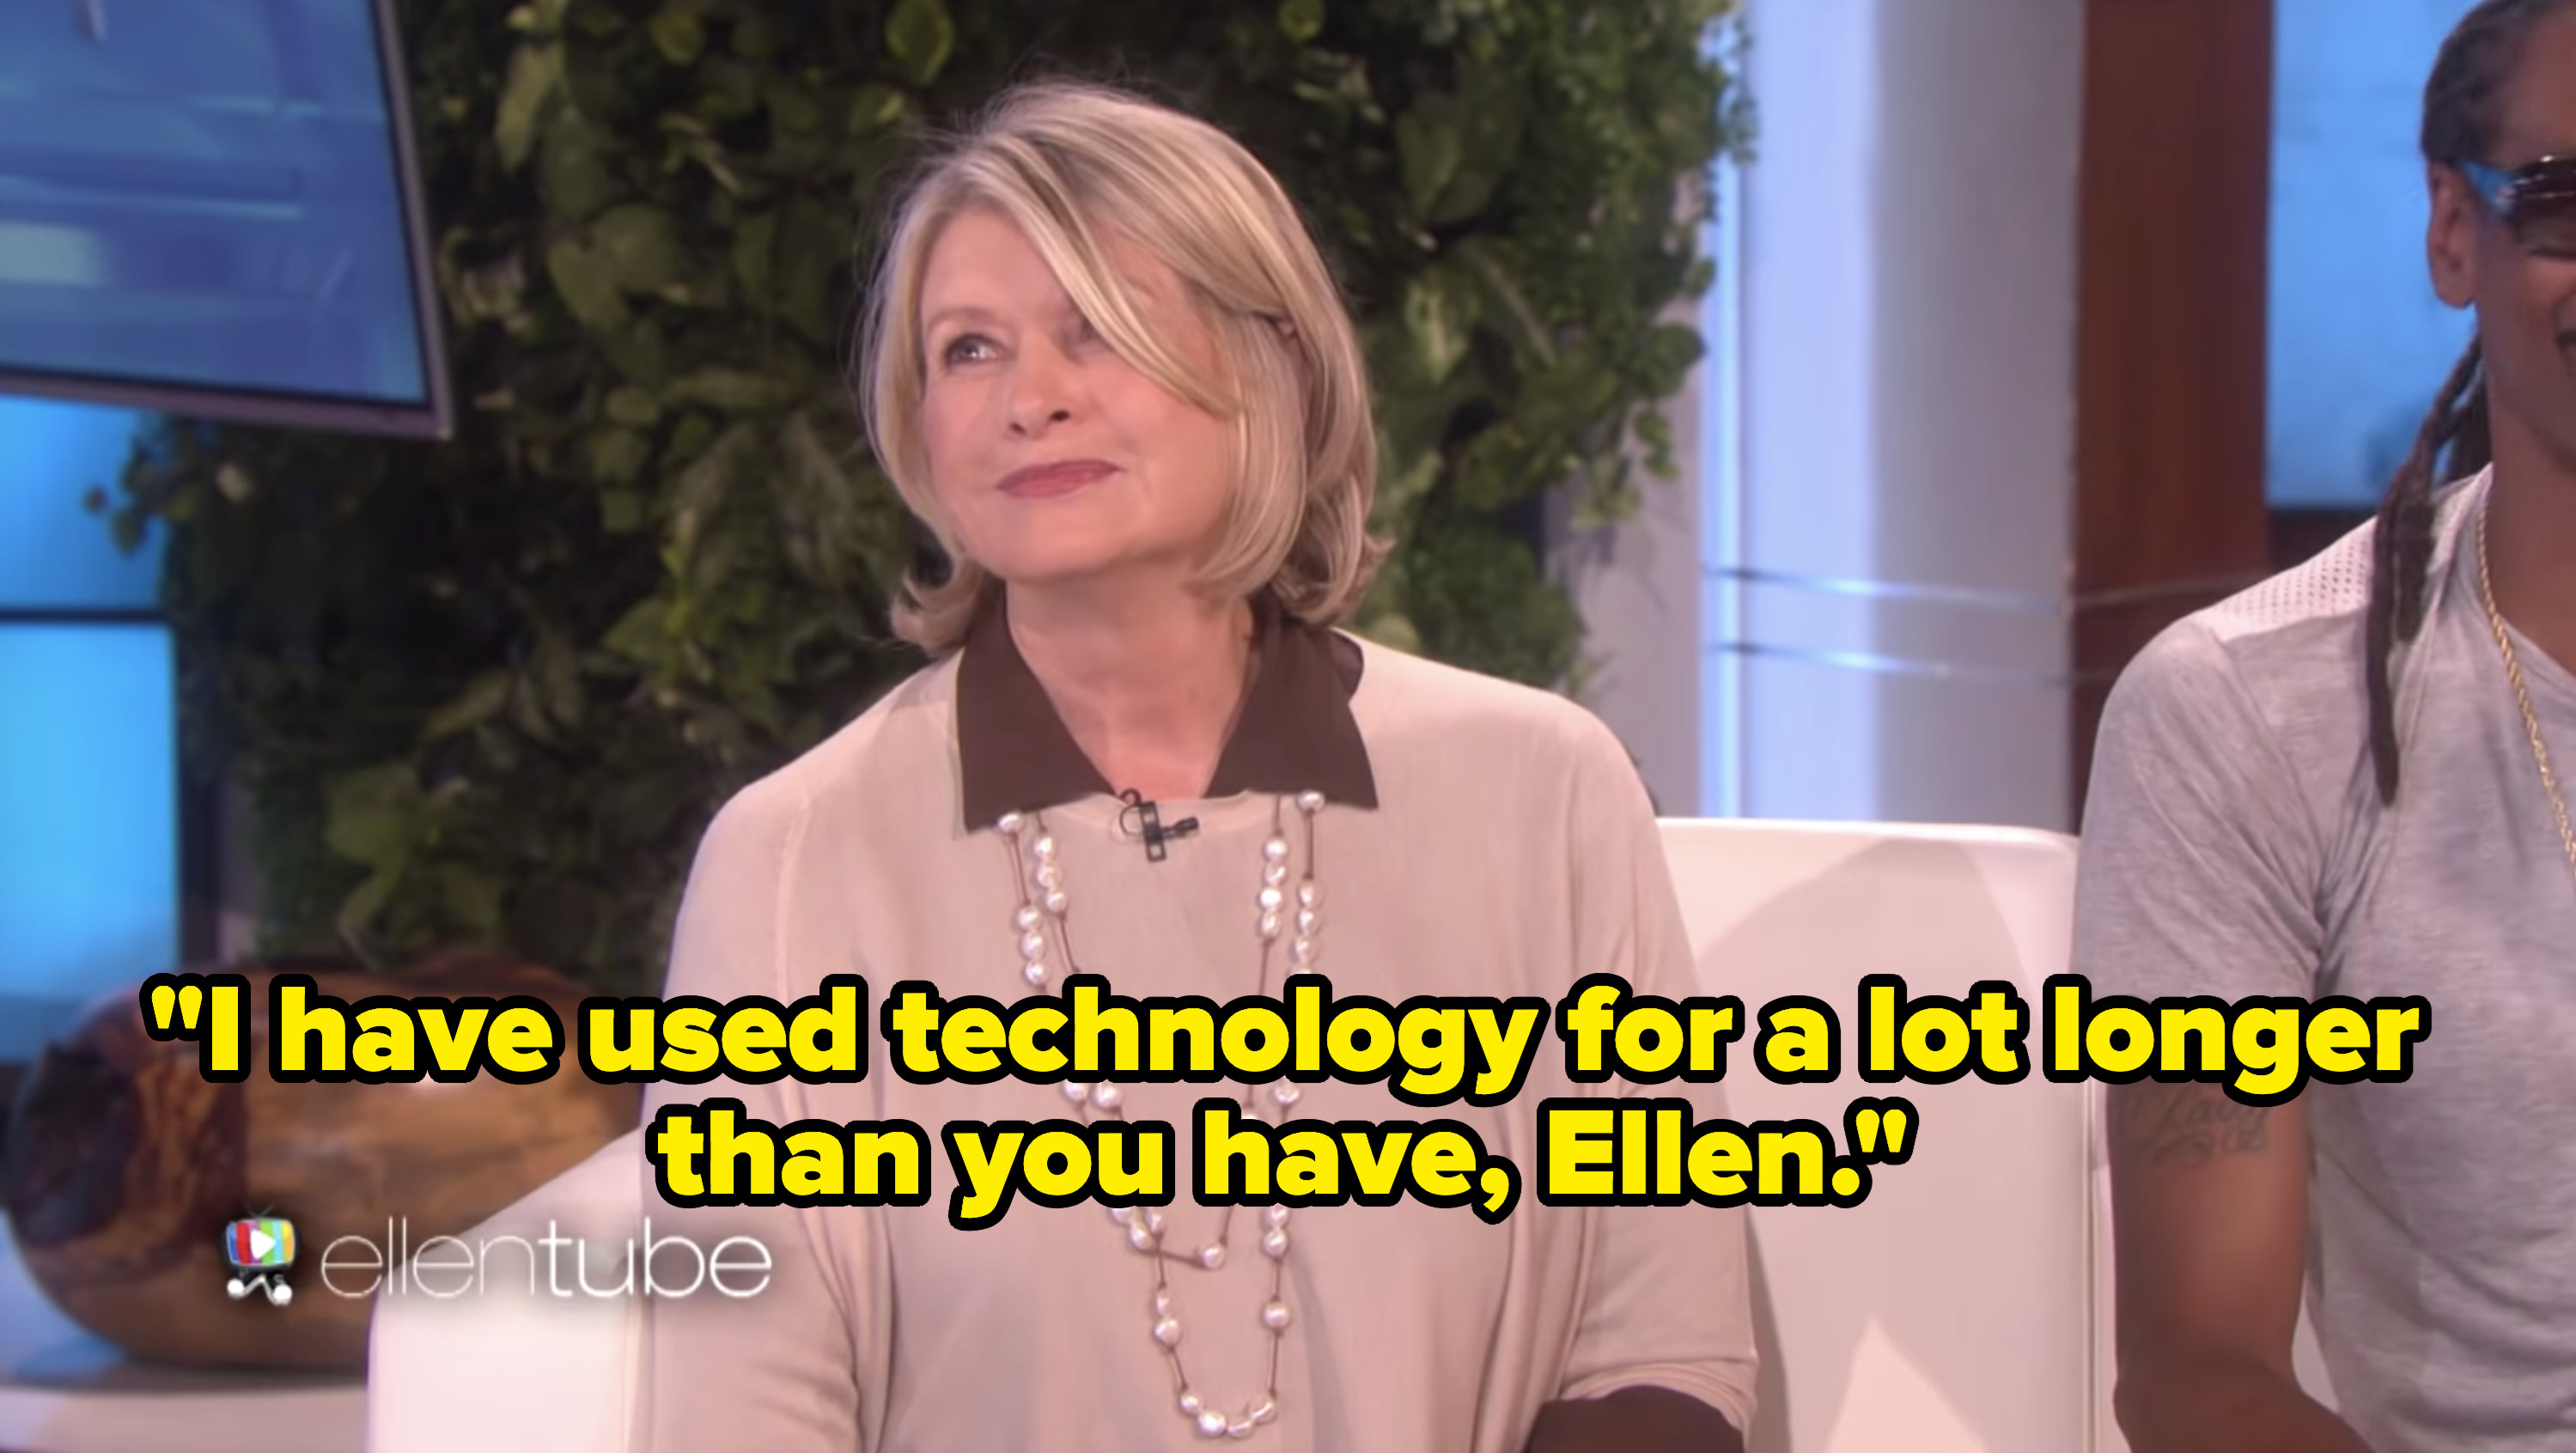 """Martha Stewart appearing on The Ellen Show and saying """"I have used technology for a lot longer than you have, Ellen"""""""